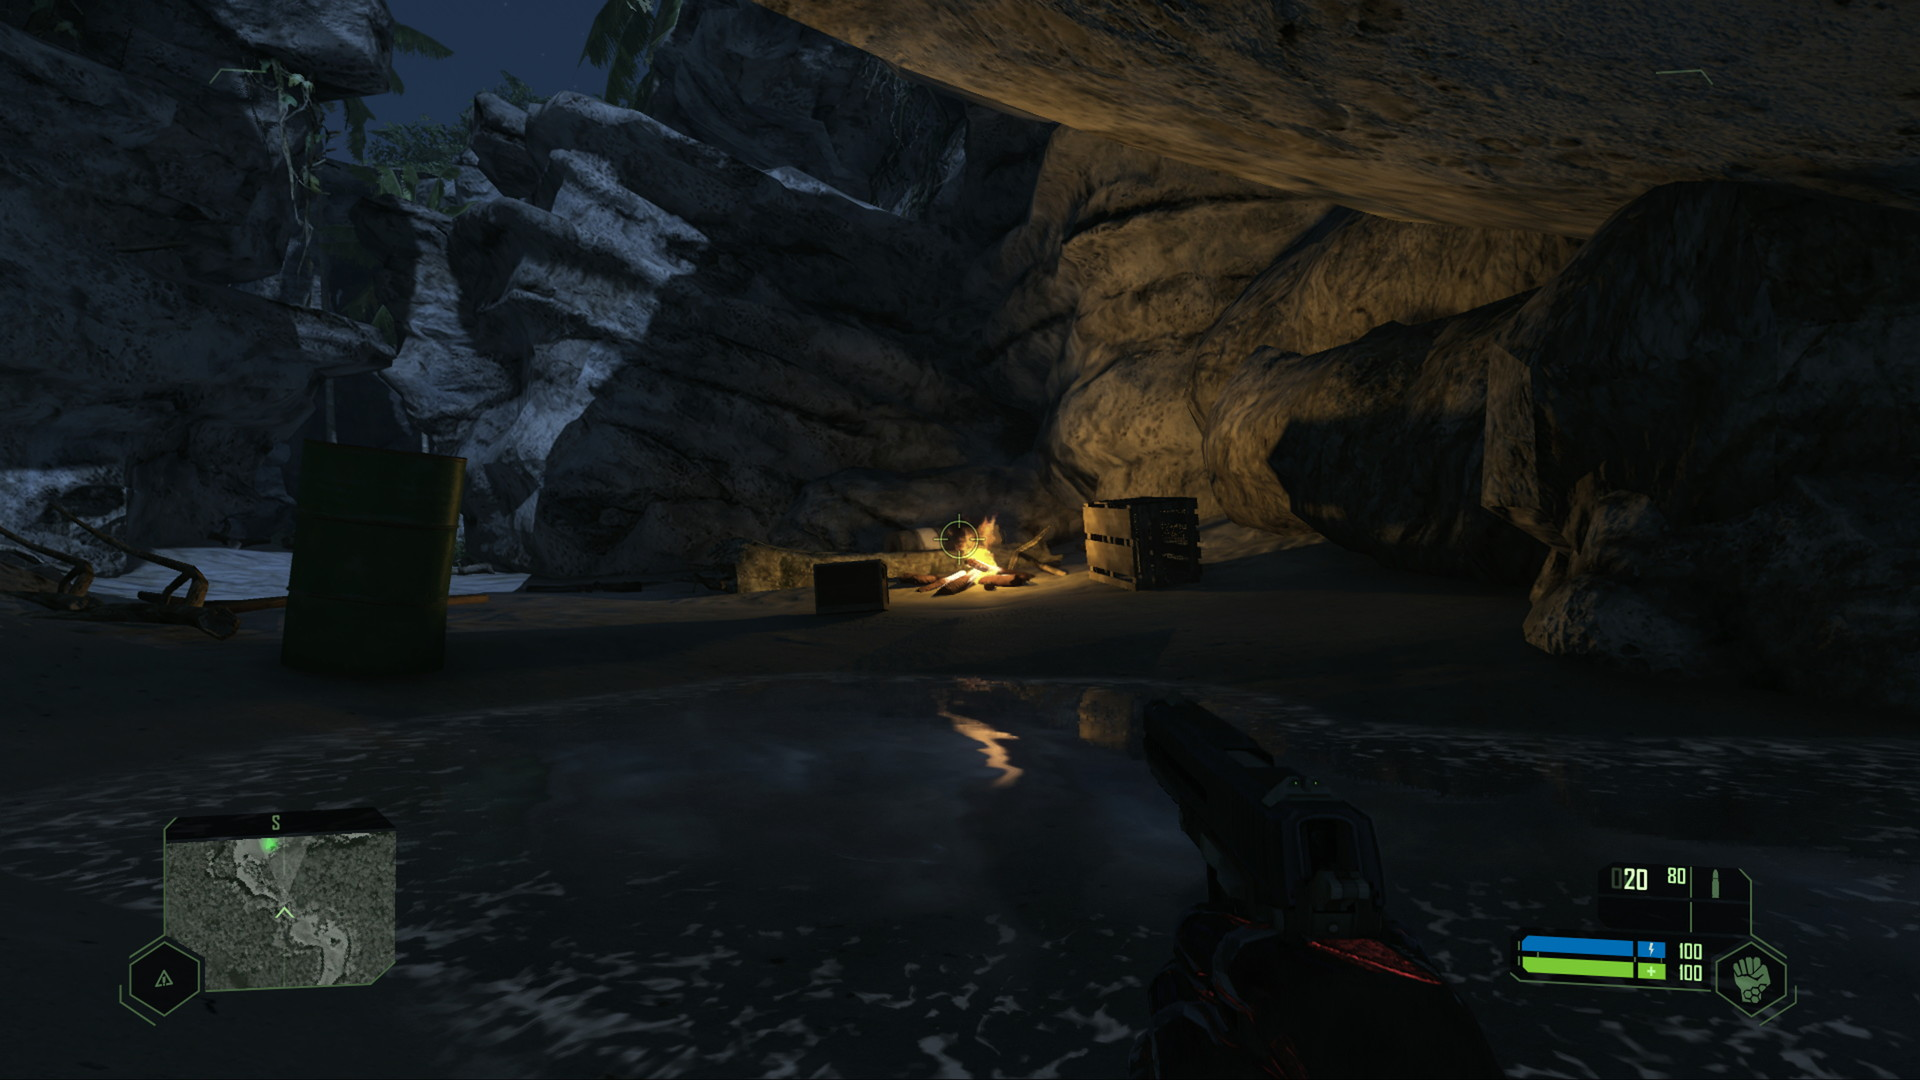 Crysis Remastered - screenshot 7